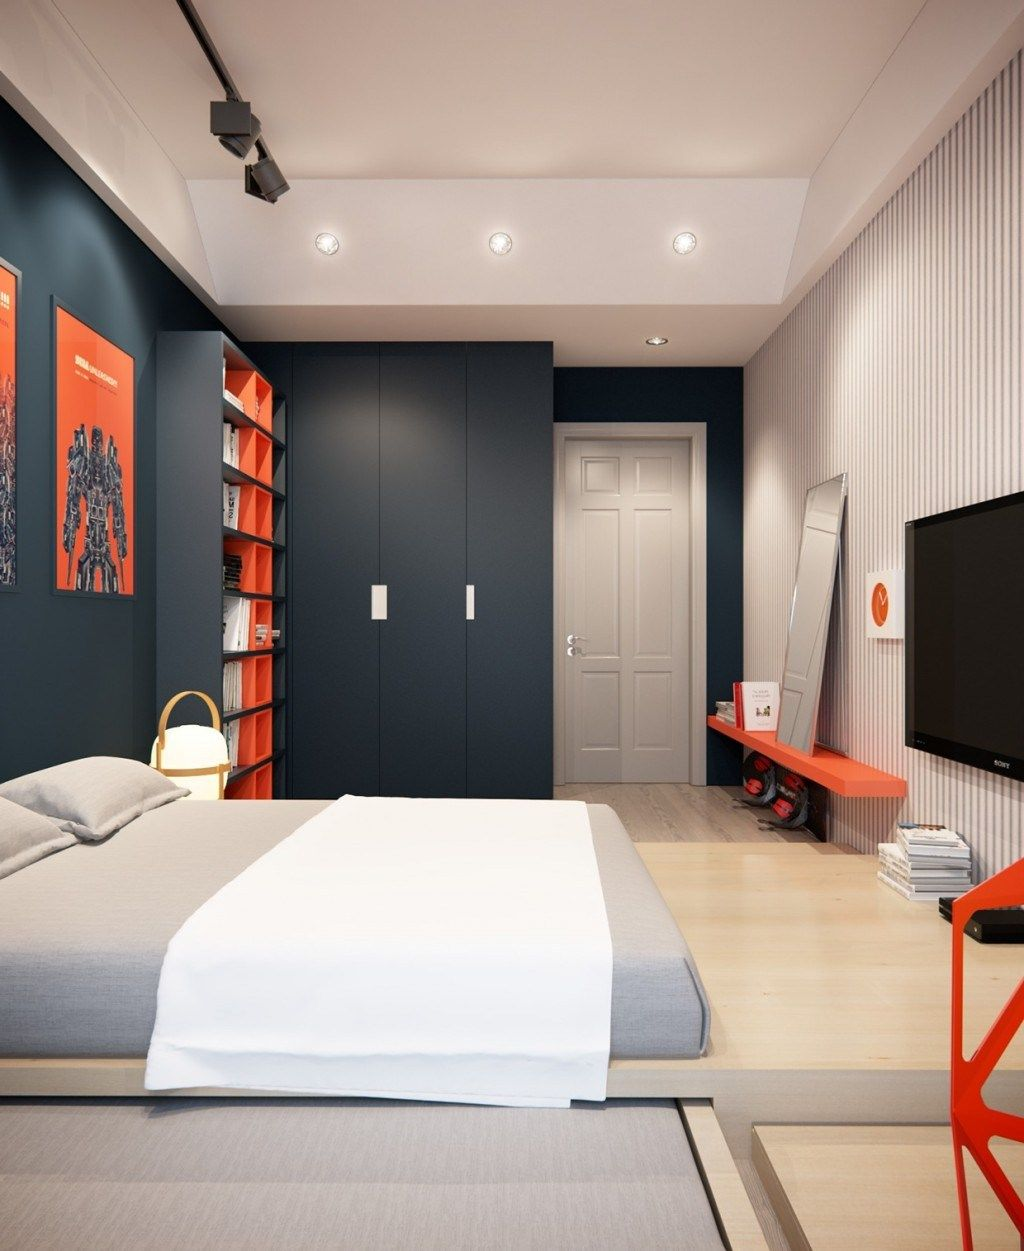 Paint Ideas Bedrooms Bedroom Ideas Boys Sun Bedroom Decorating Ideas Men Modern Kids Bedroom Ideas Boy Bedroom Design Modern Bedroom Design Bedroom Interior